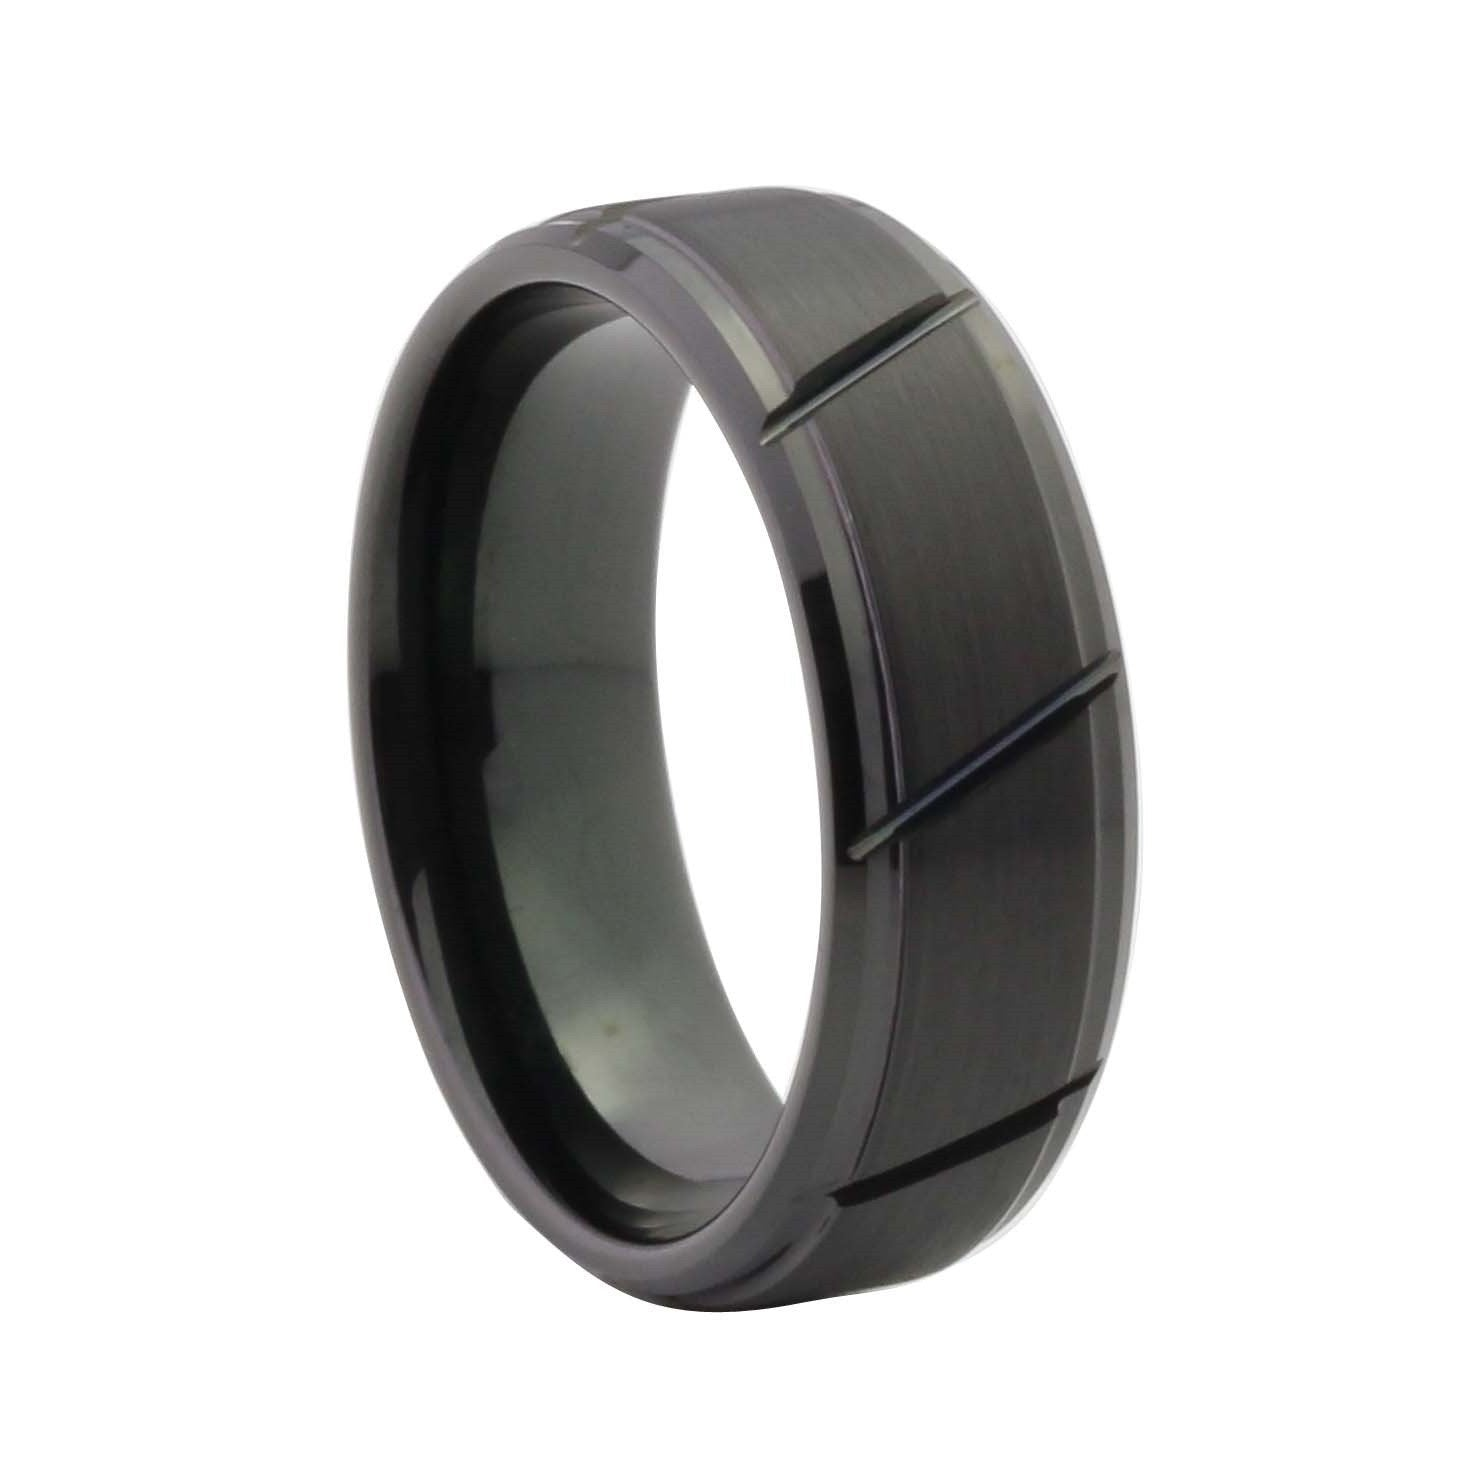 ring band tungsten s wedding bands carbide men black brushed satin rings triton mens